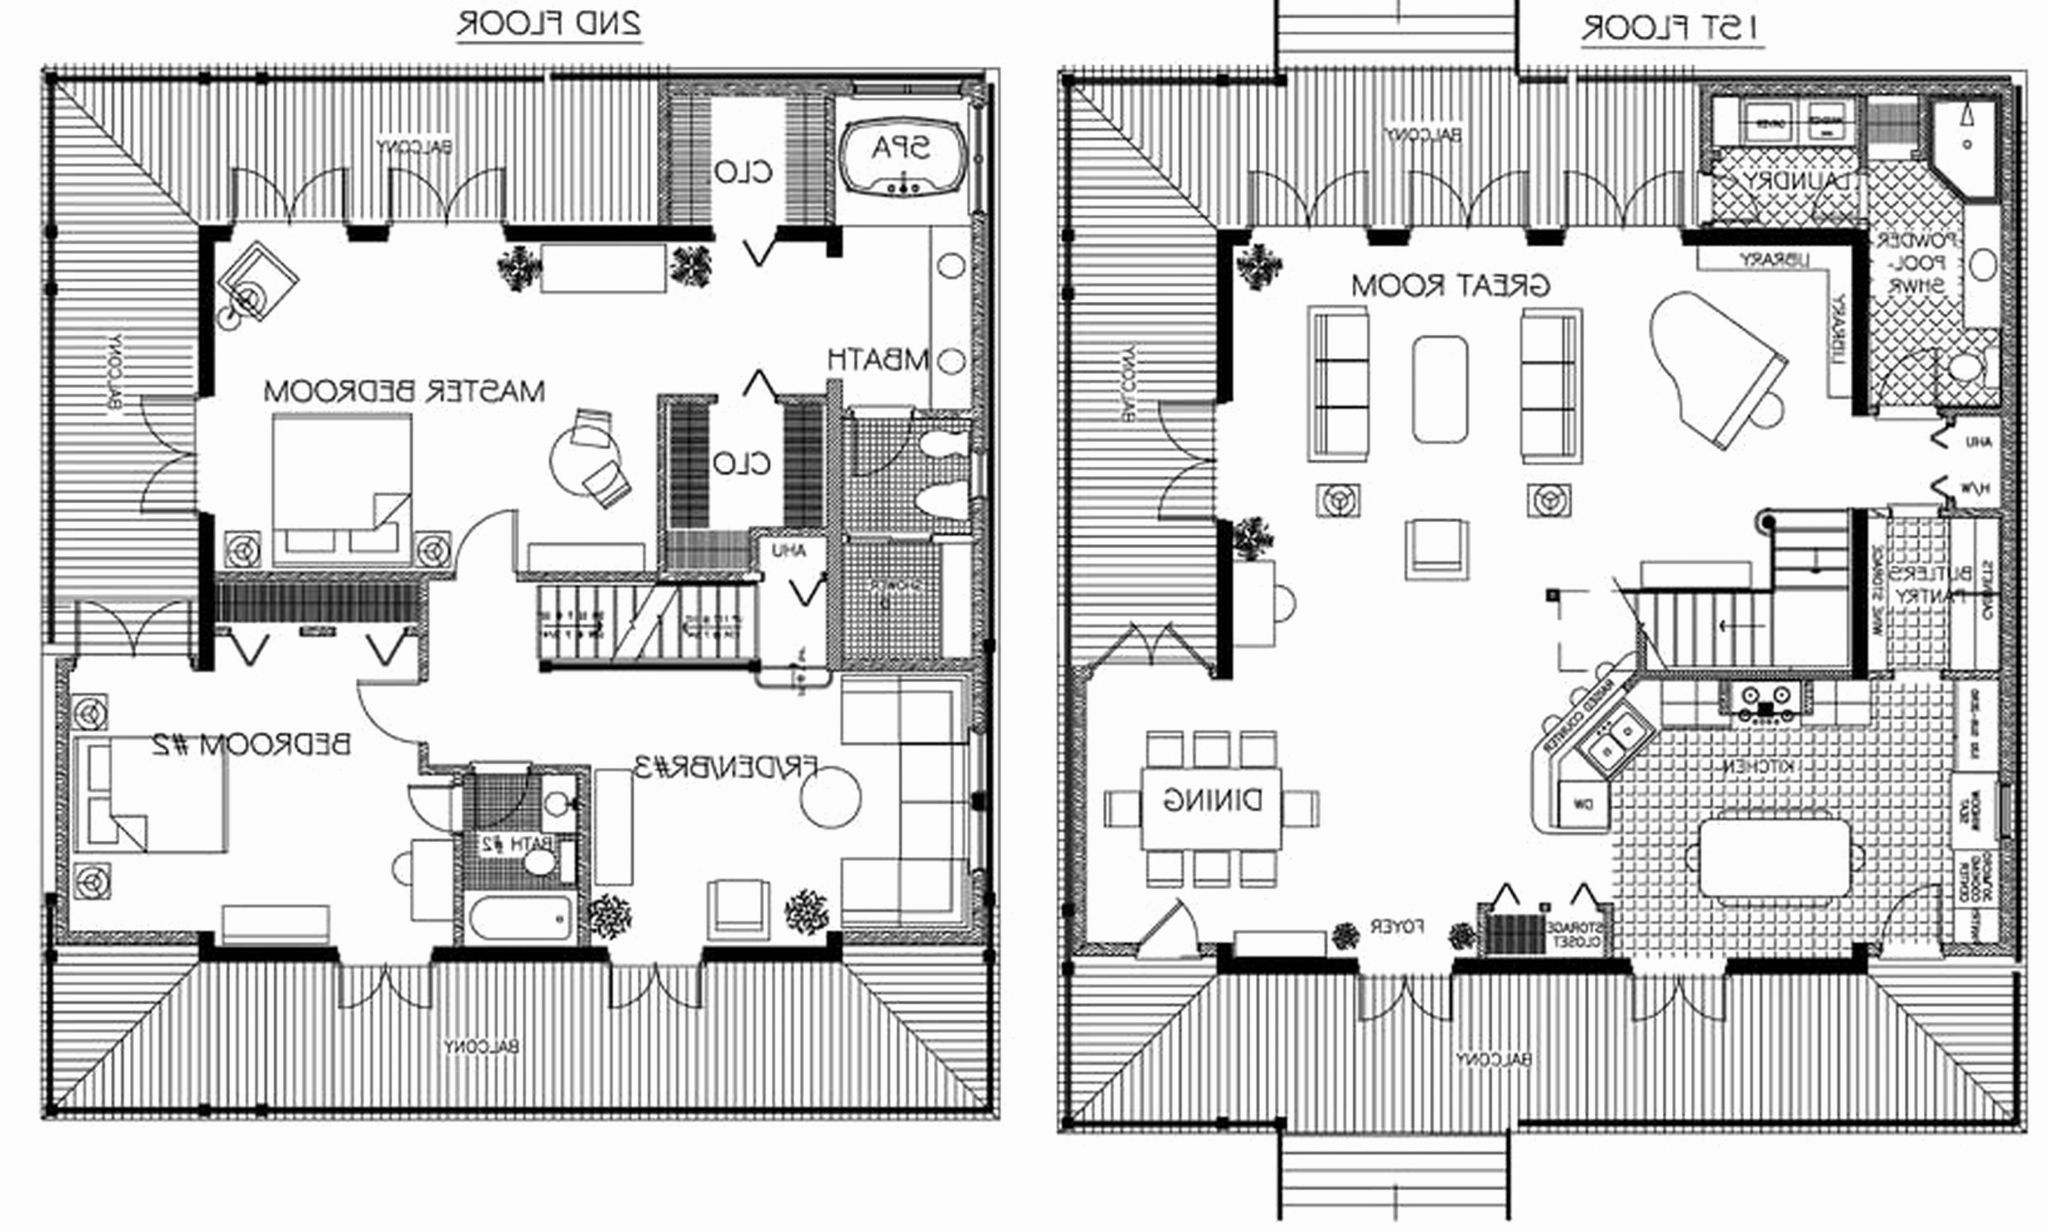 Restaurant Layout Floor Plan Samples House Floor Plans House Layouts House Blueprints